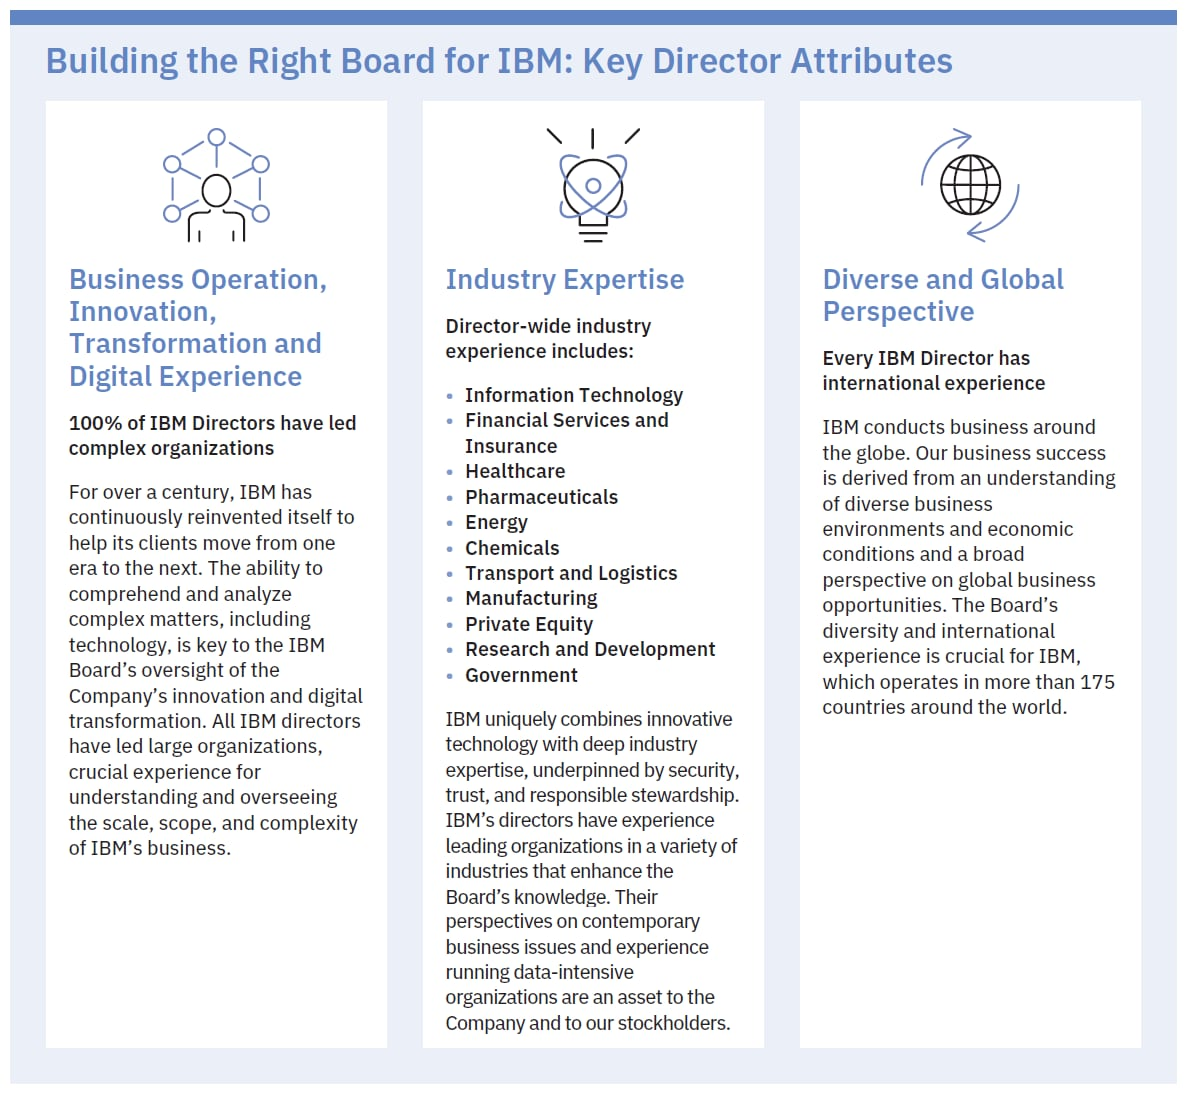 Building the Right Board for IBM: Key Director Attributes